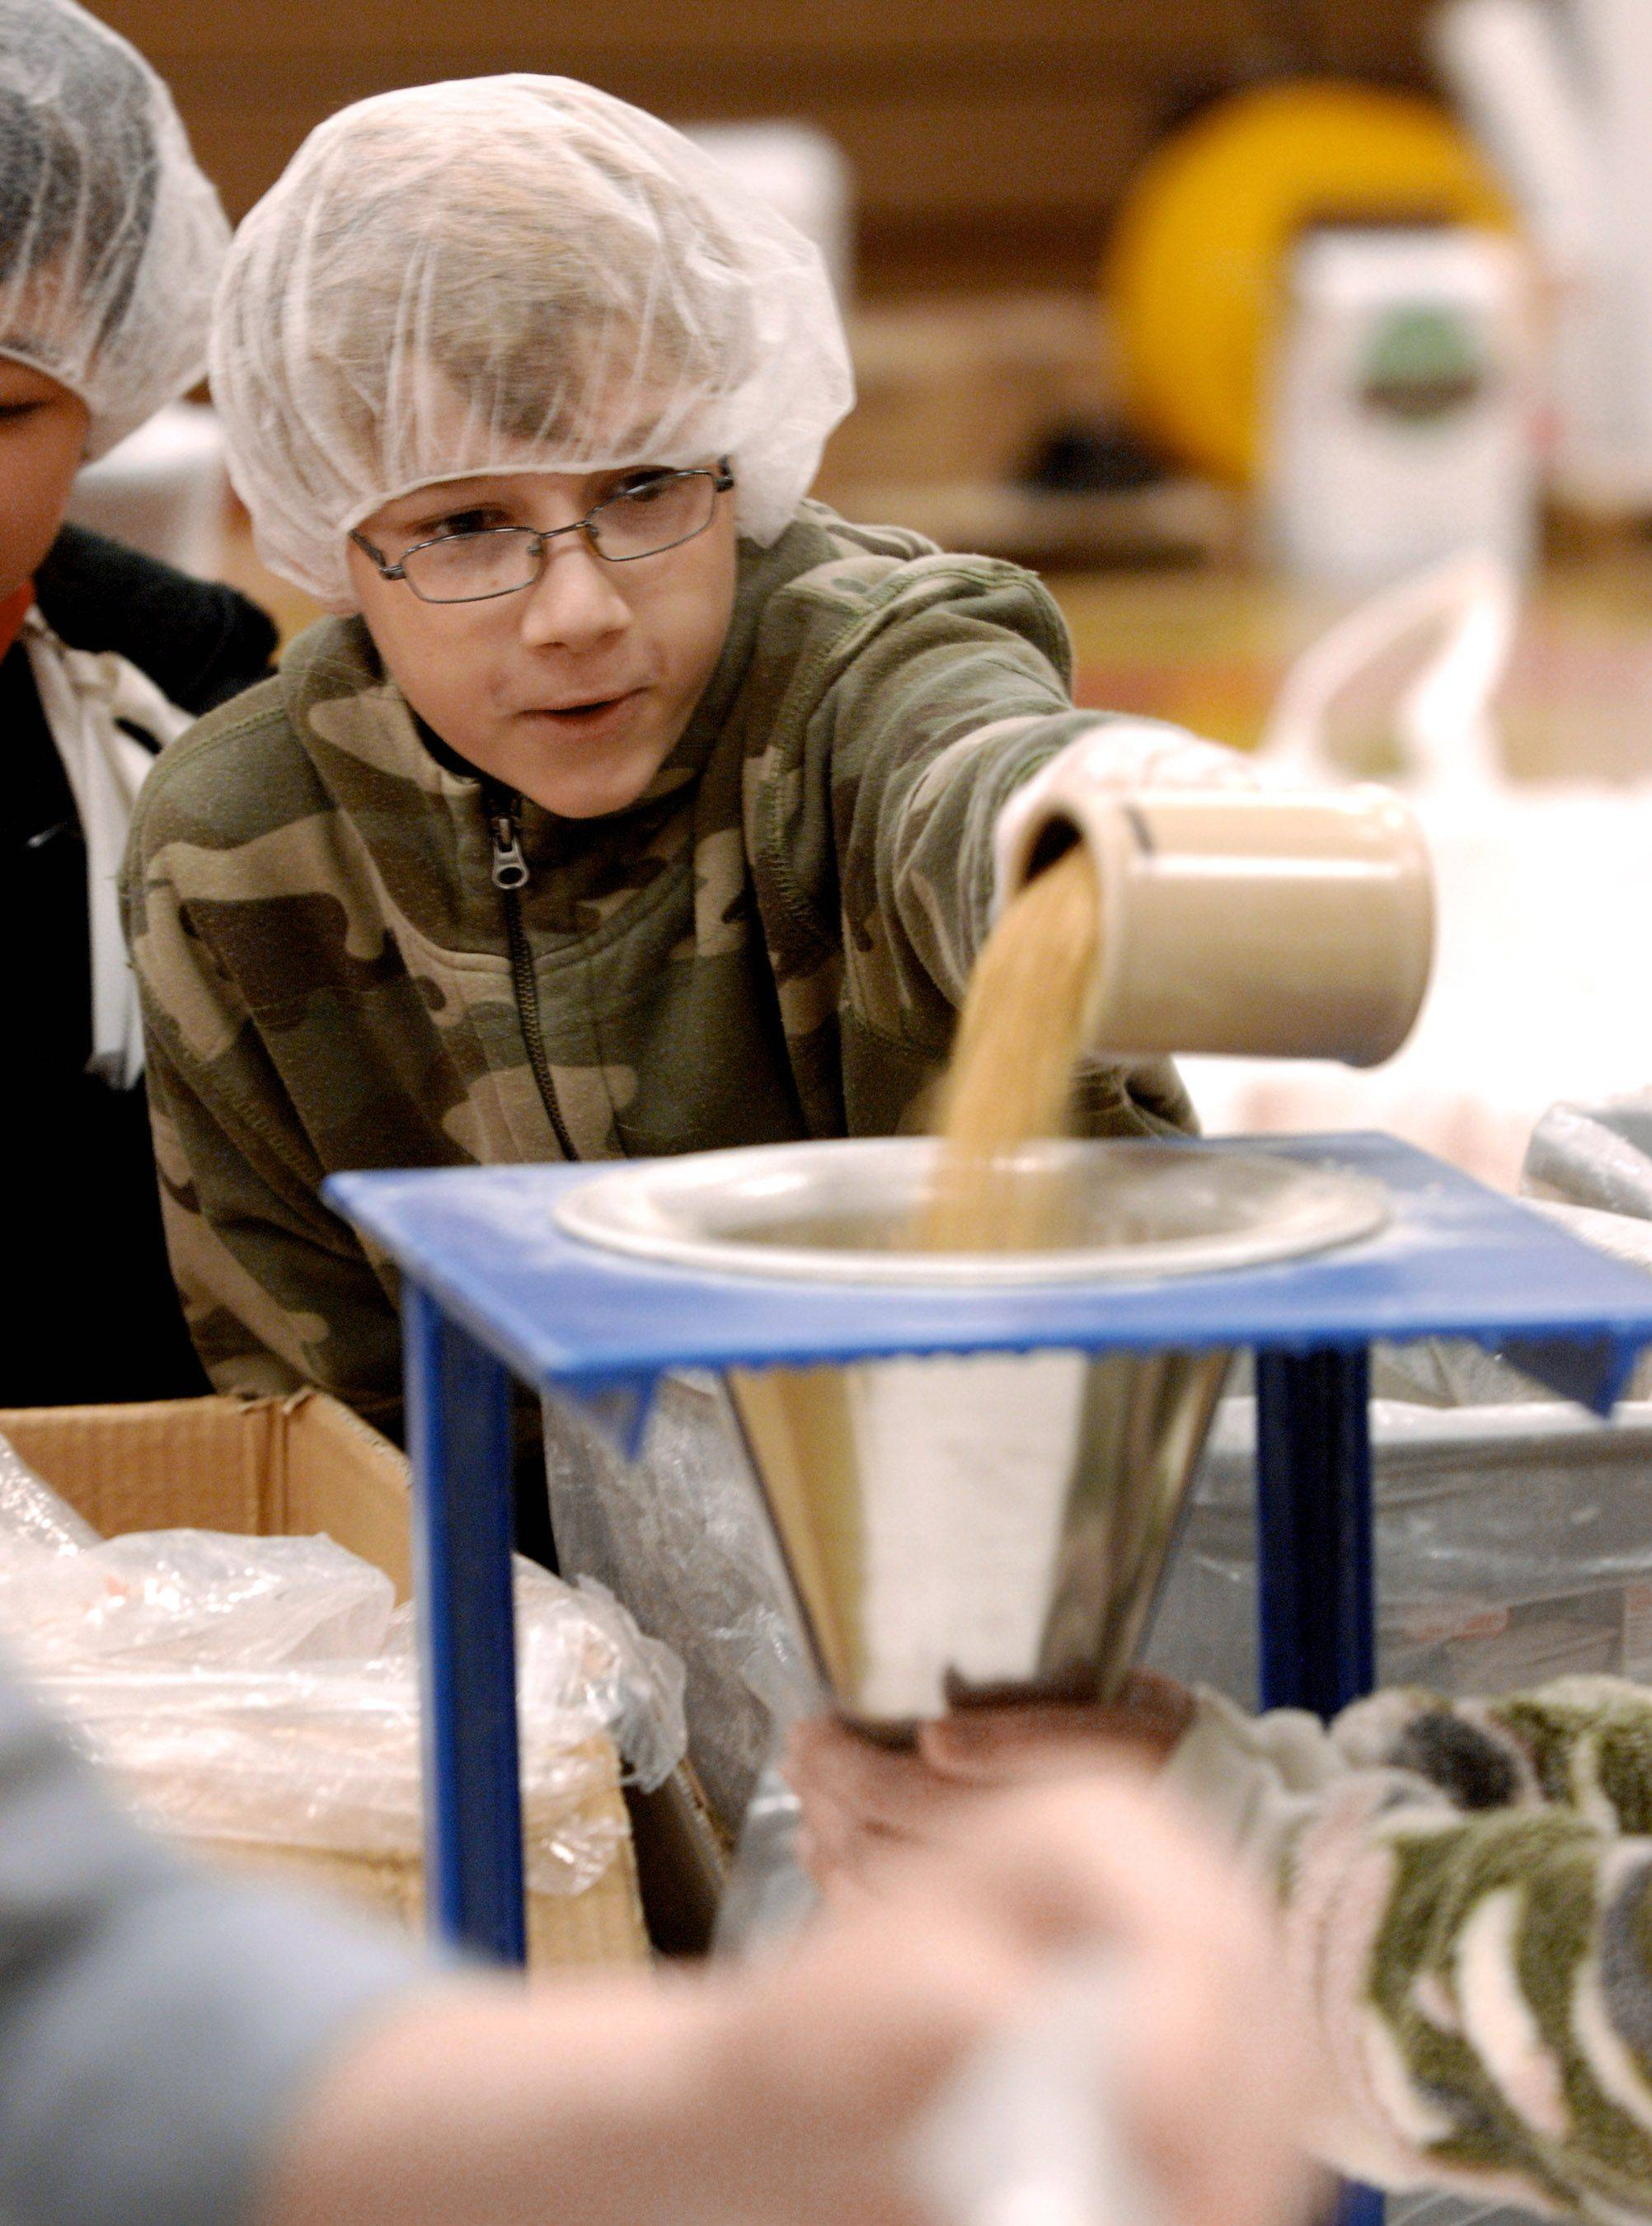 Nick Coser pours in the soy component as he participates in packing food for Feed My Staving Children at St. Peters School in Arlington Heights, to finish out a weekend of packing by seven area churches. Seven churches packed over 175,000 meals.